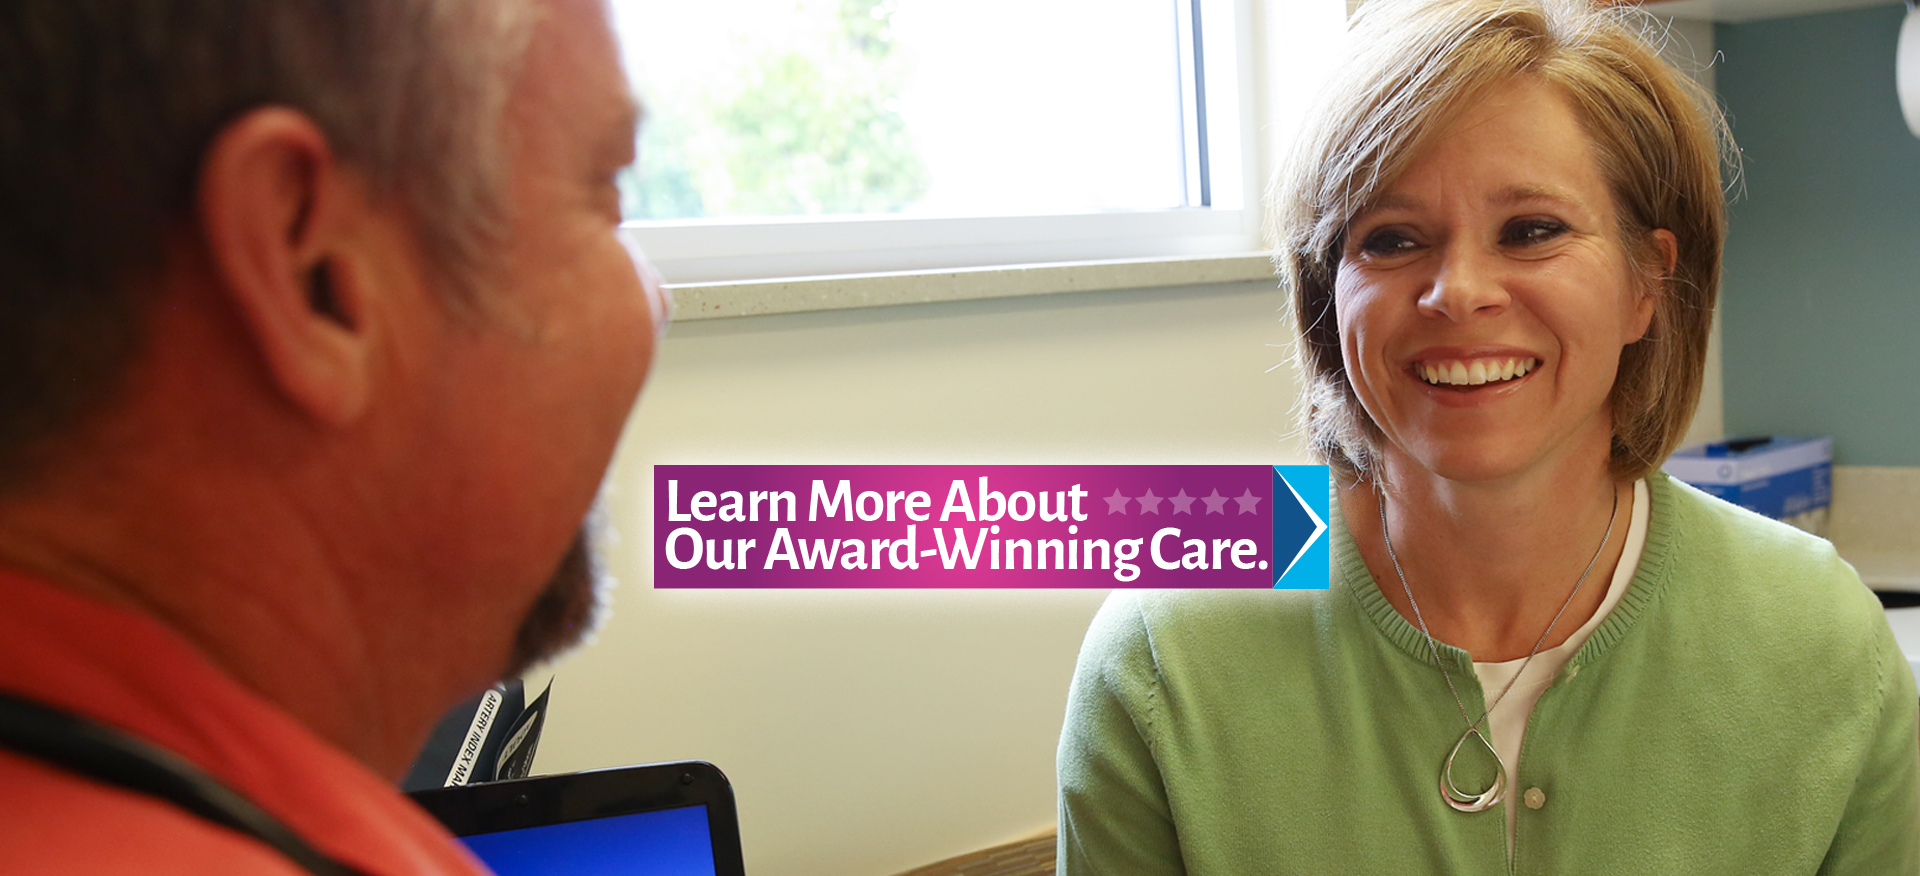 Learn More About Our Award-Winning Care